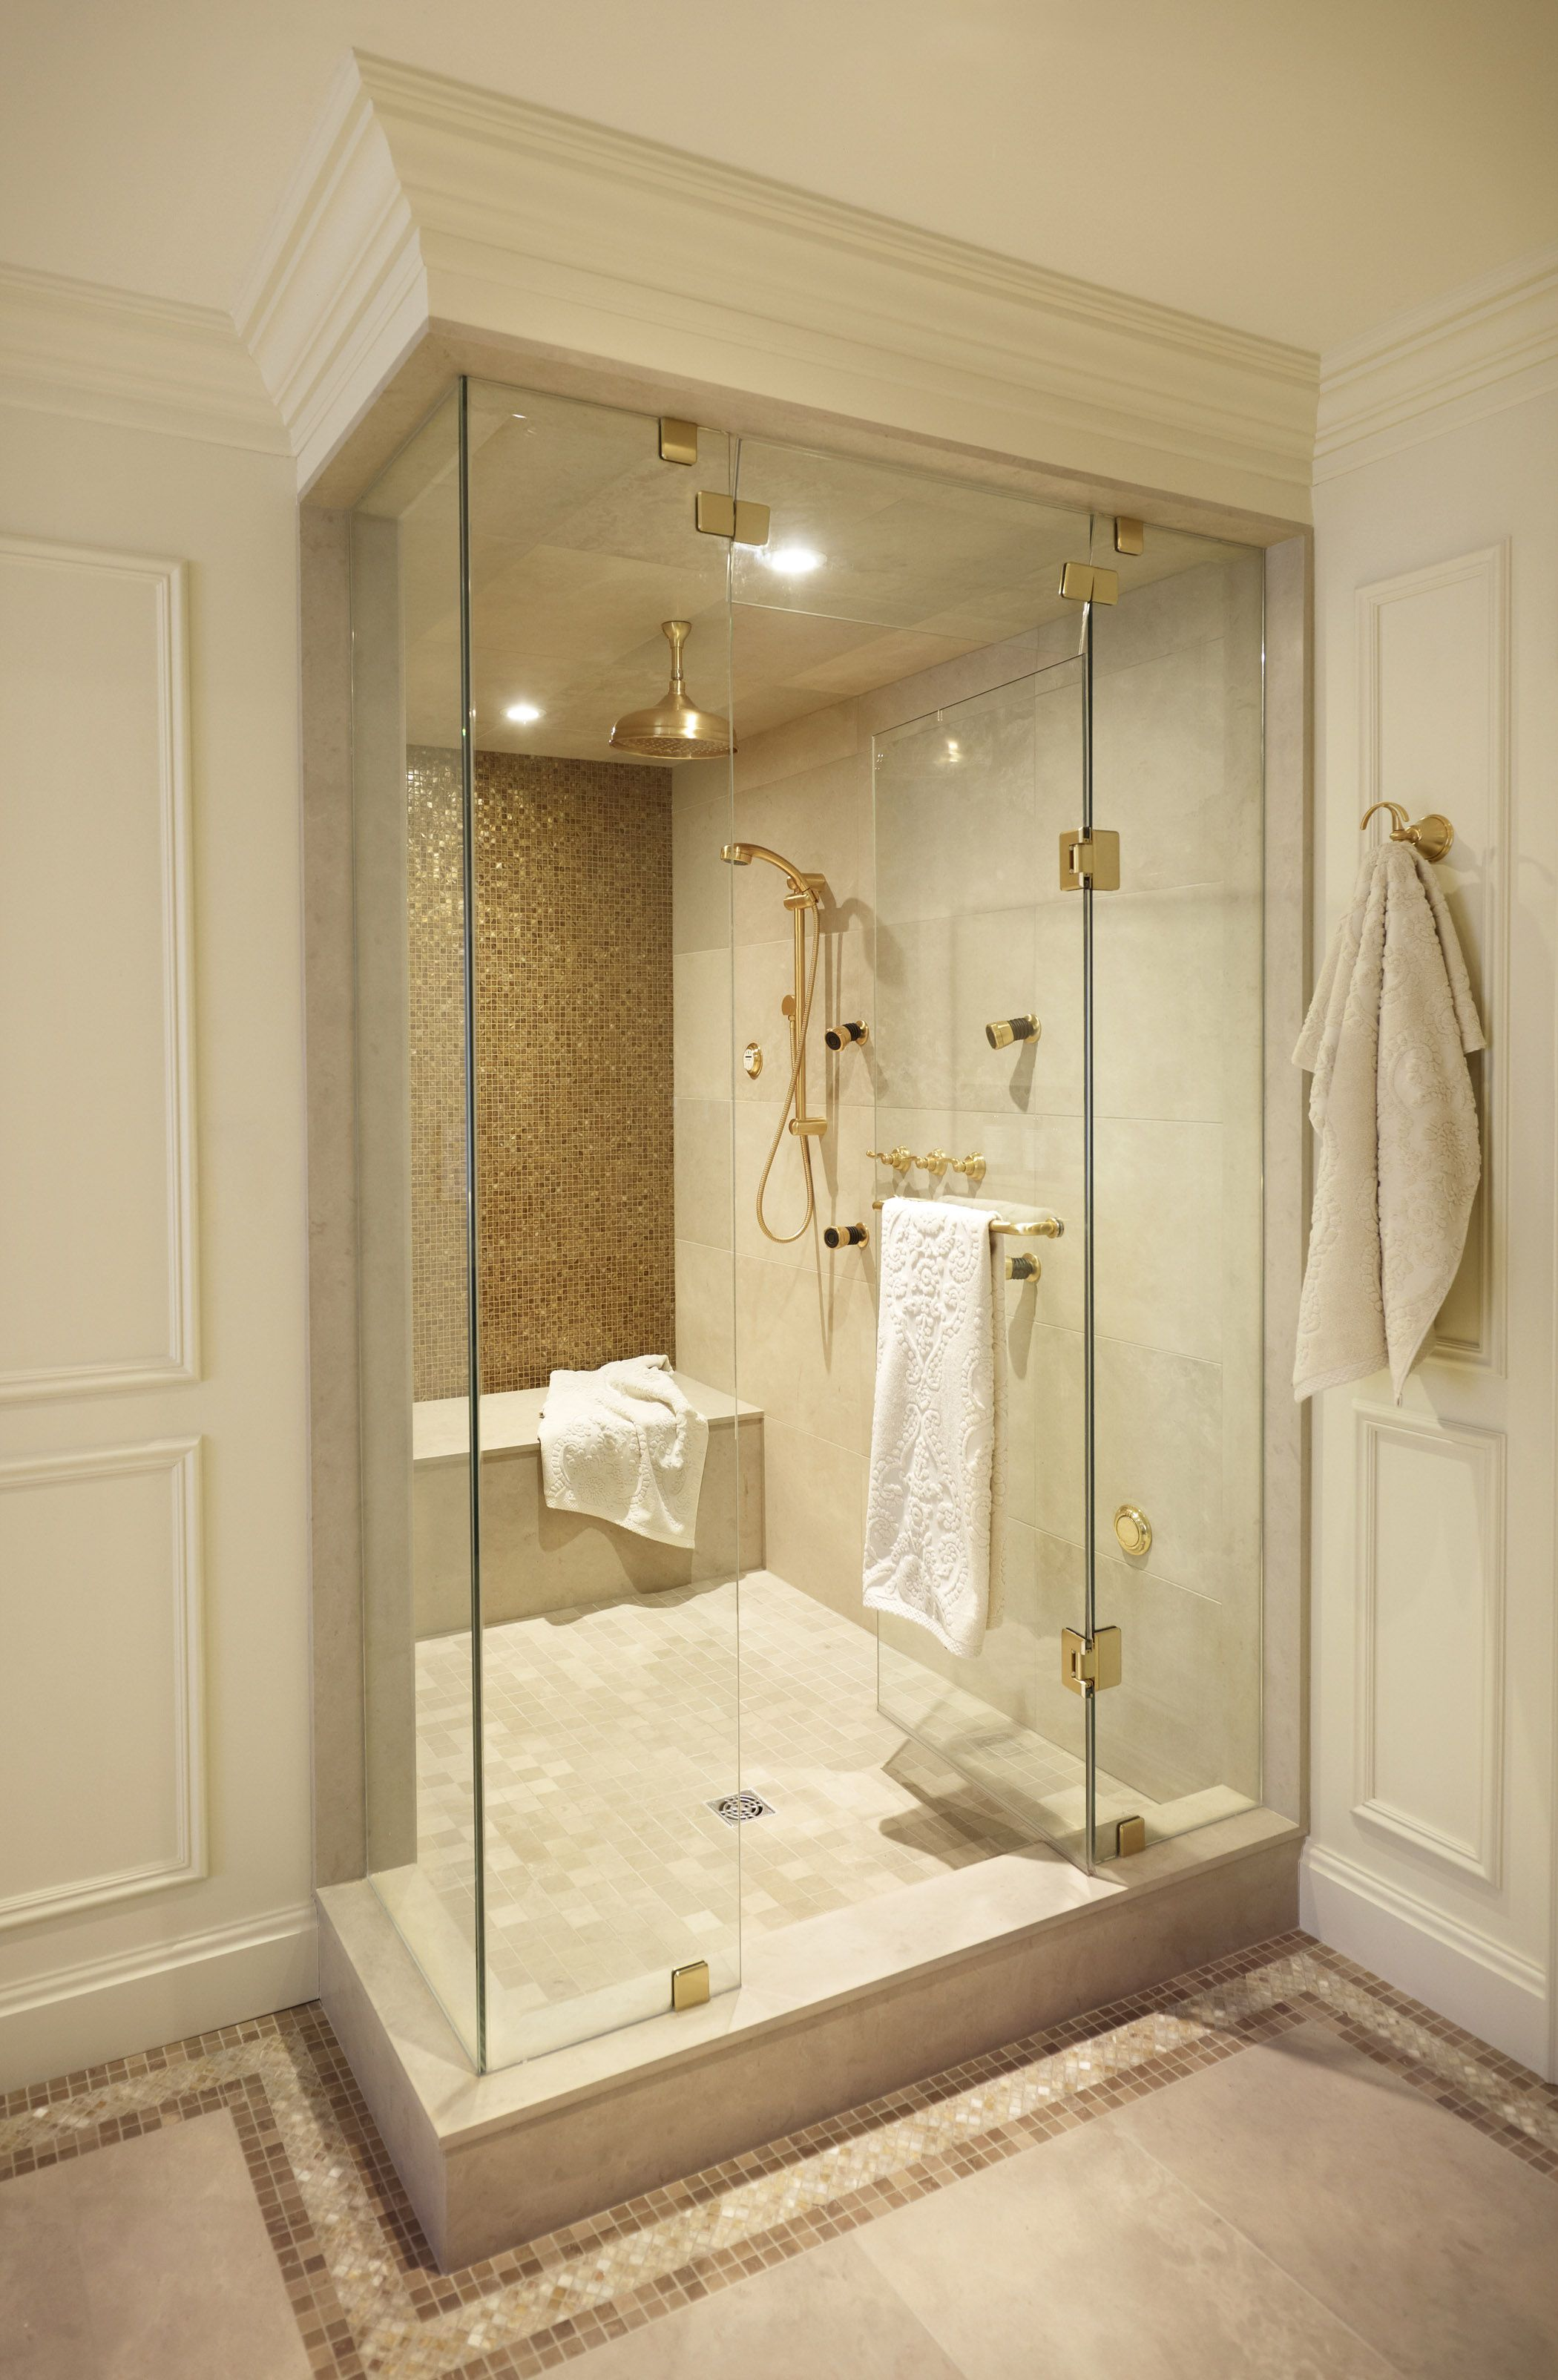 Pics Of Bathroom Designs Interior Design Project Couple 39s Retreat Regina